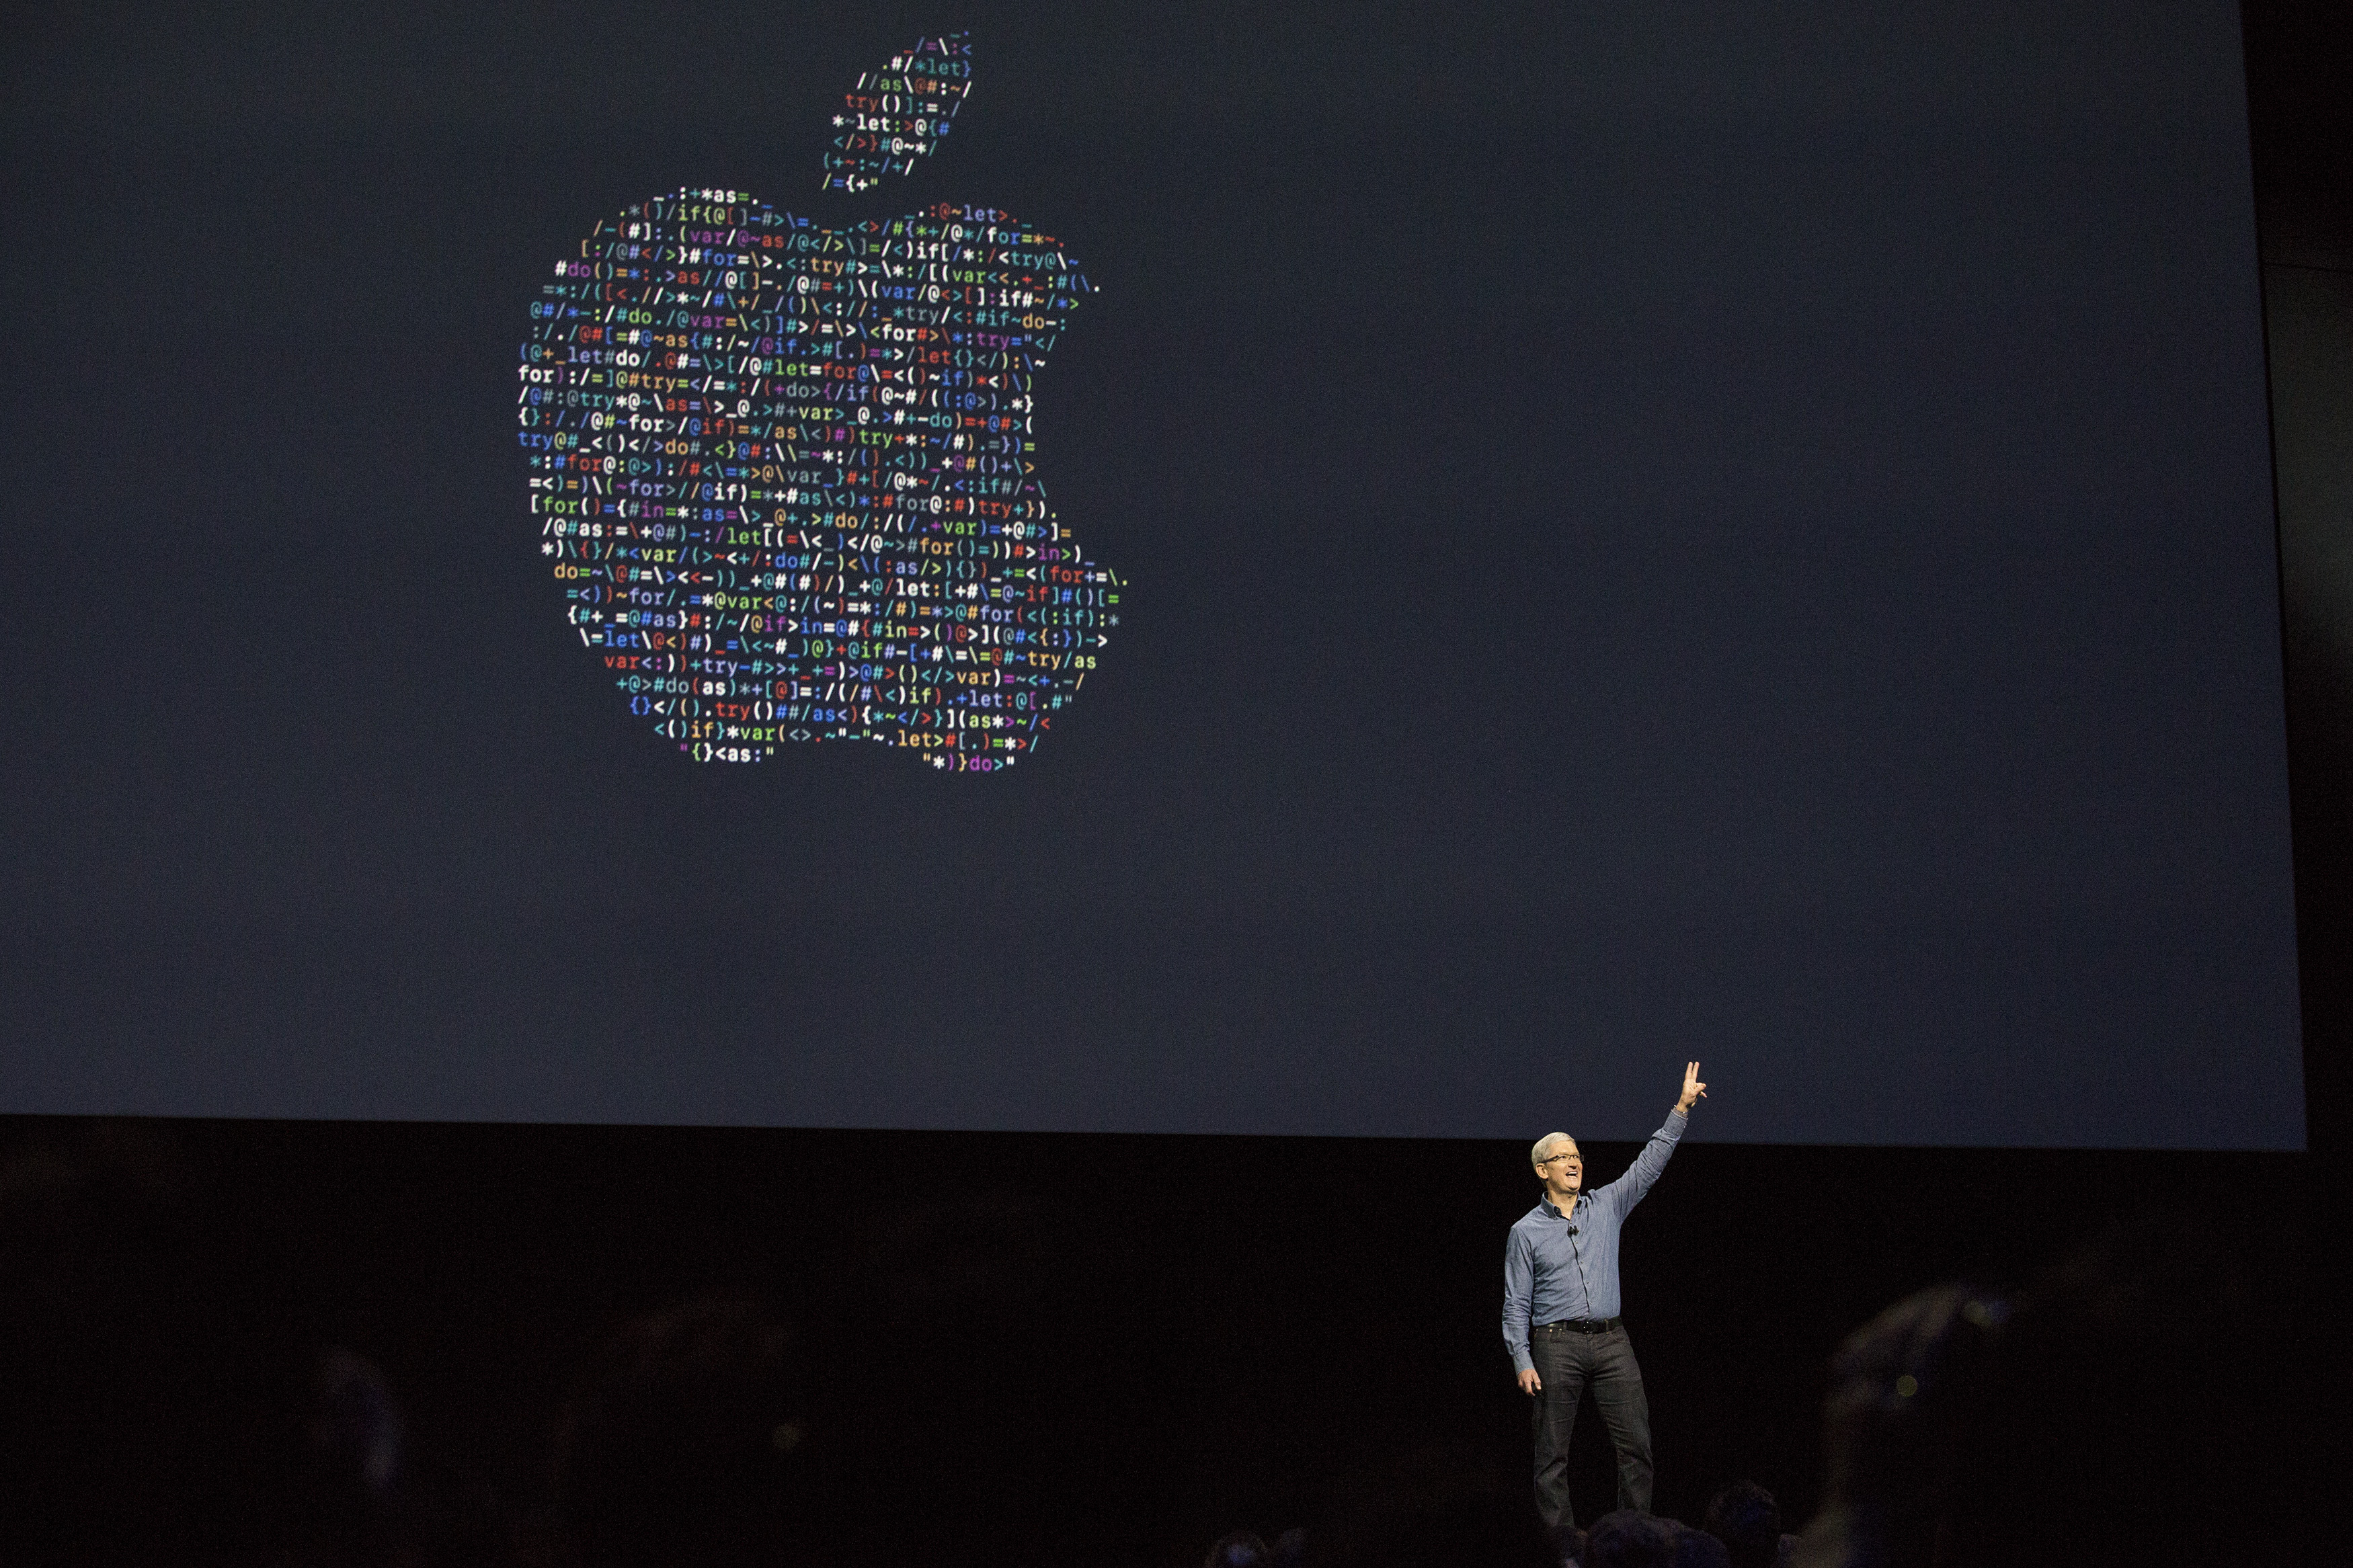 Apple CEO Tim Cook waves good bye after speaking at an Apple event at the Worldwide Developer's Conference on June 13, 2016 in San Francisco, California.